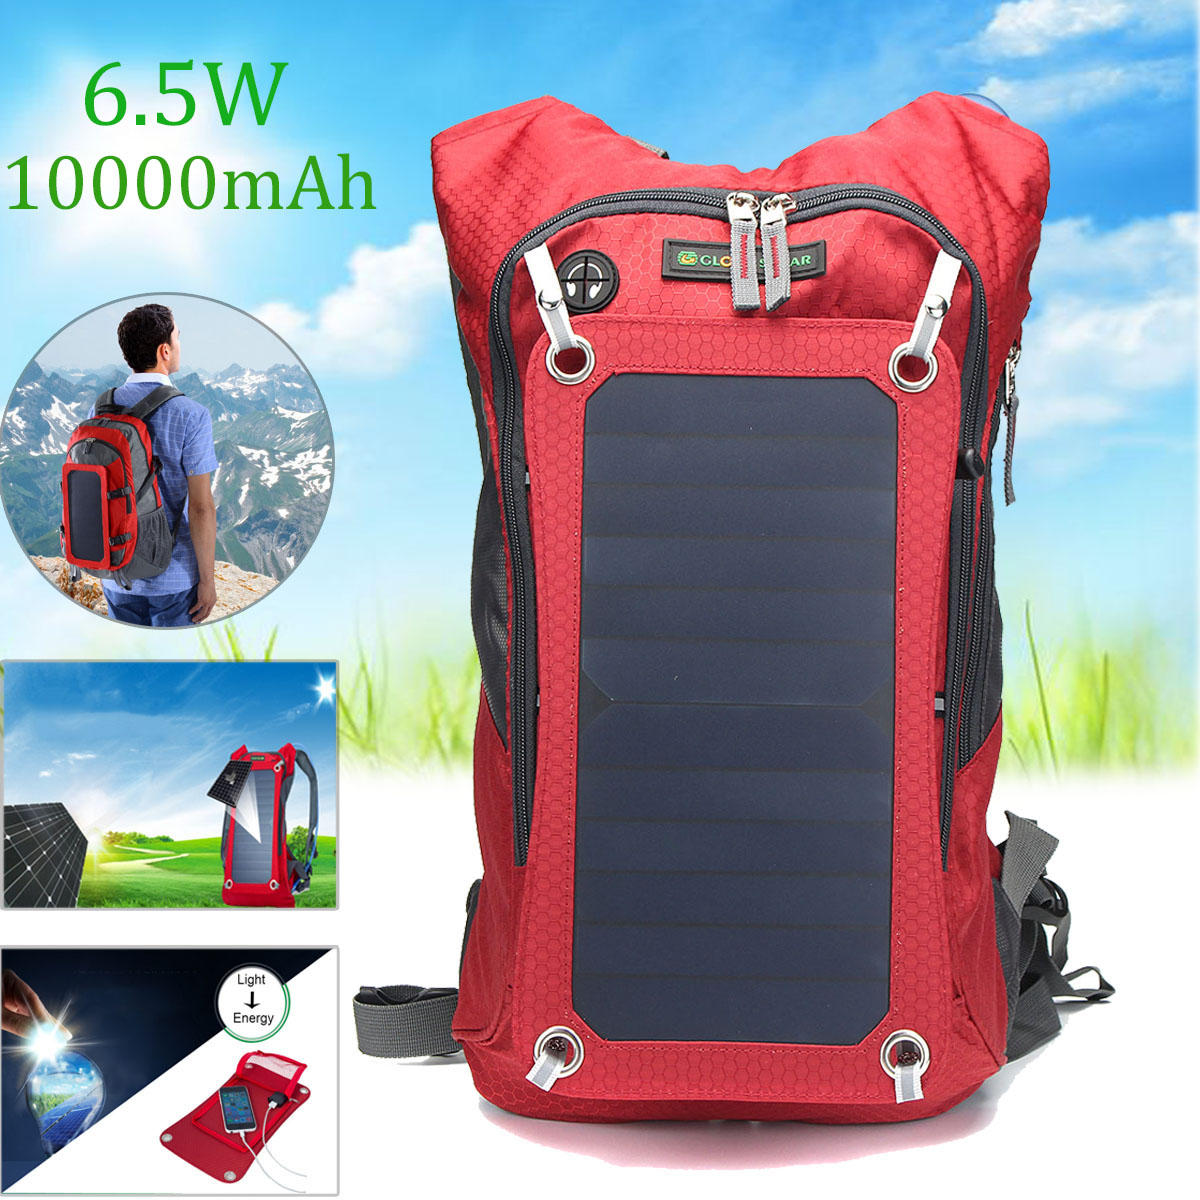 3c29bf3a5da1 Outdoor Travel Bag 6.5W Solar Panel USB Powered Detachable Backpack Charger